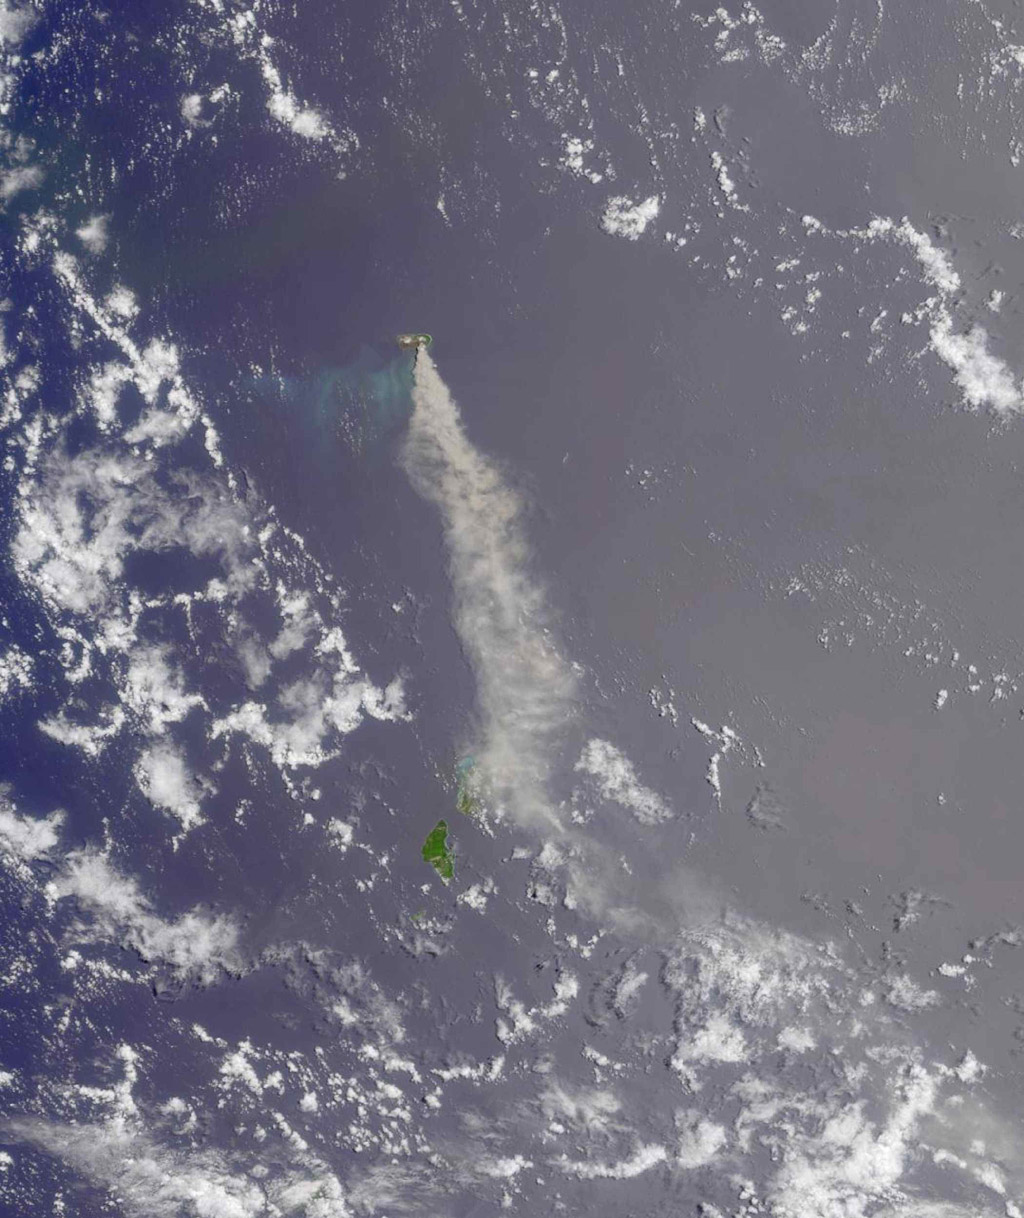 Anatahan Island is shown in this MISR Mystery Quiz #14 captured by NASA's Terra spacecraft.